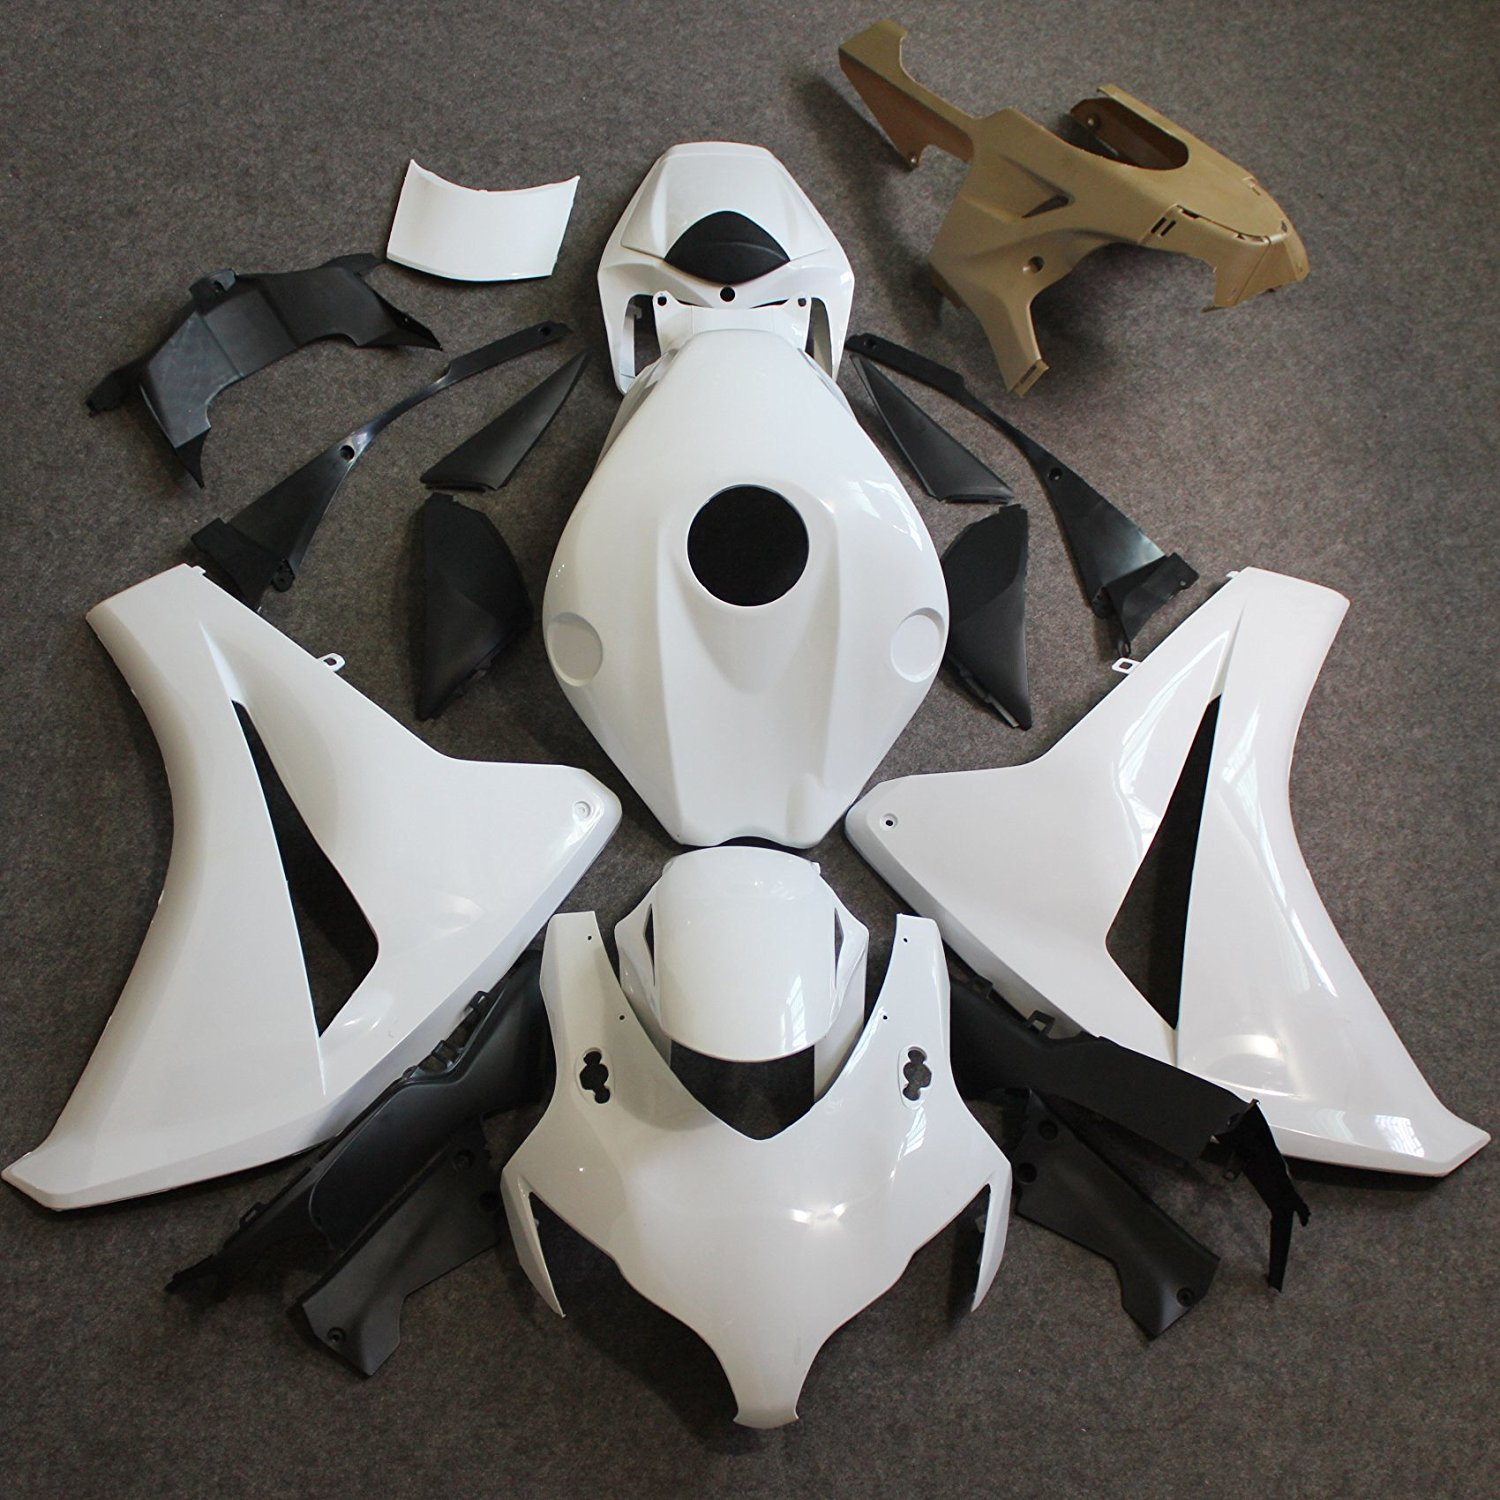 Motorcycle Unpainted Injection Bodywork Fairing For Honda CBR 1000 RR CBR1000RR 2008 2009 CBR 1000RR CBR1000 RR 08 09 Fairings arashi motorcycle radiator grille protective cover grill guard protector for 2008 2009 2010 2011 honda cbr1000rr cbr 1000 rr